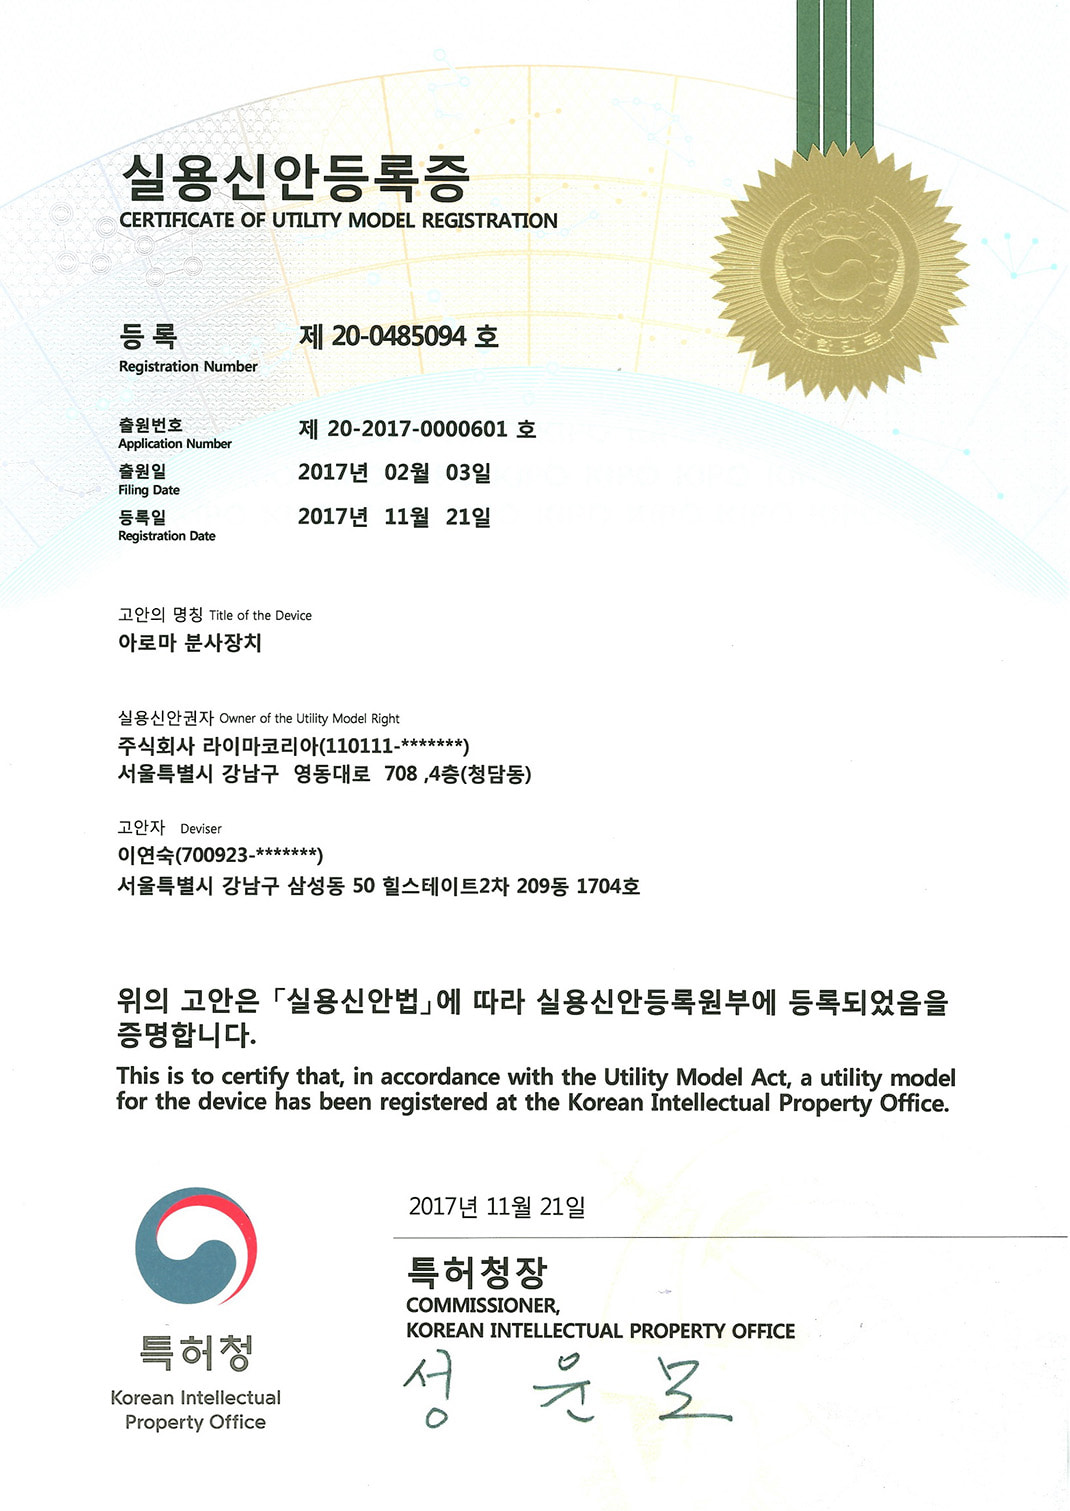 Korean Intellectual Property Office 특허청 실용신안등록증